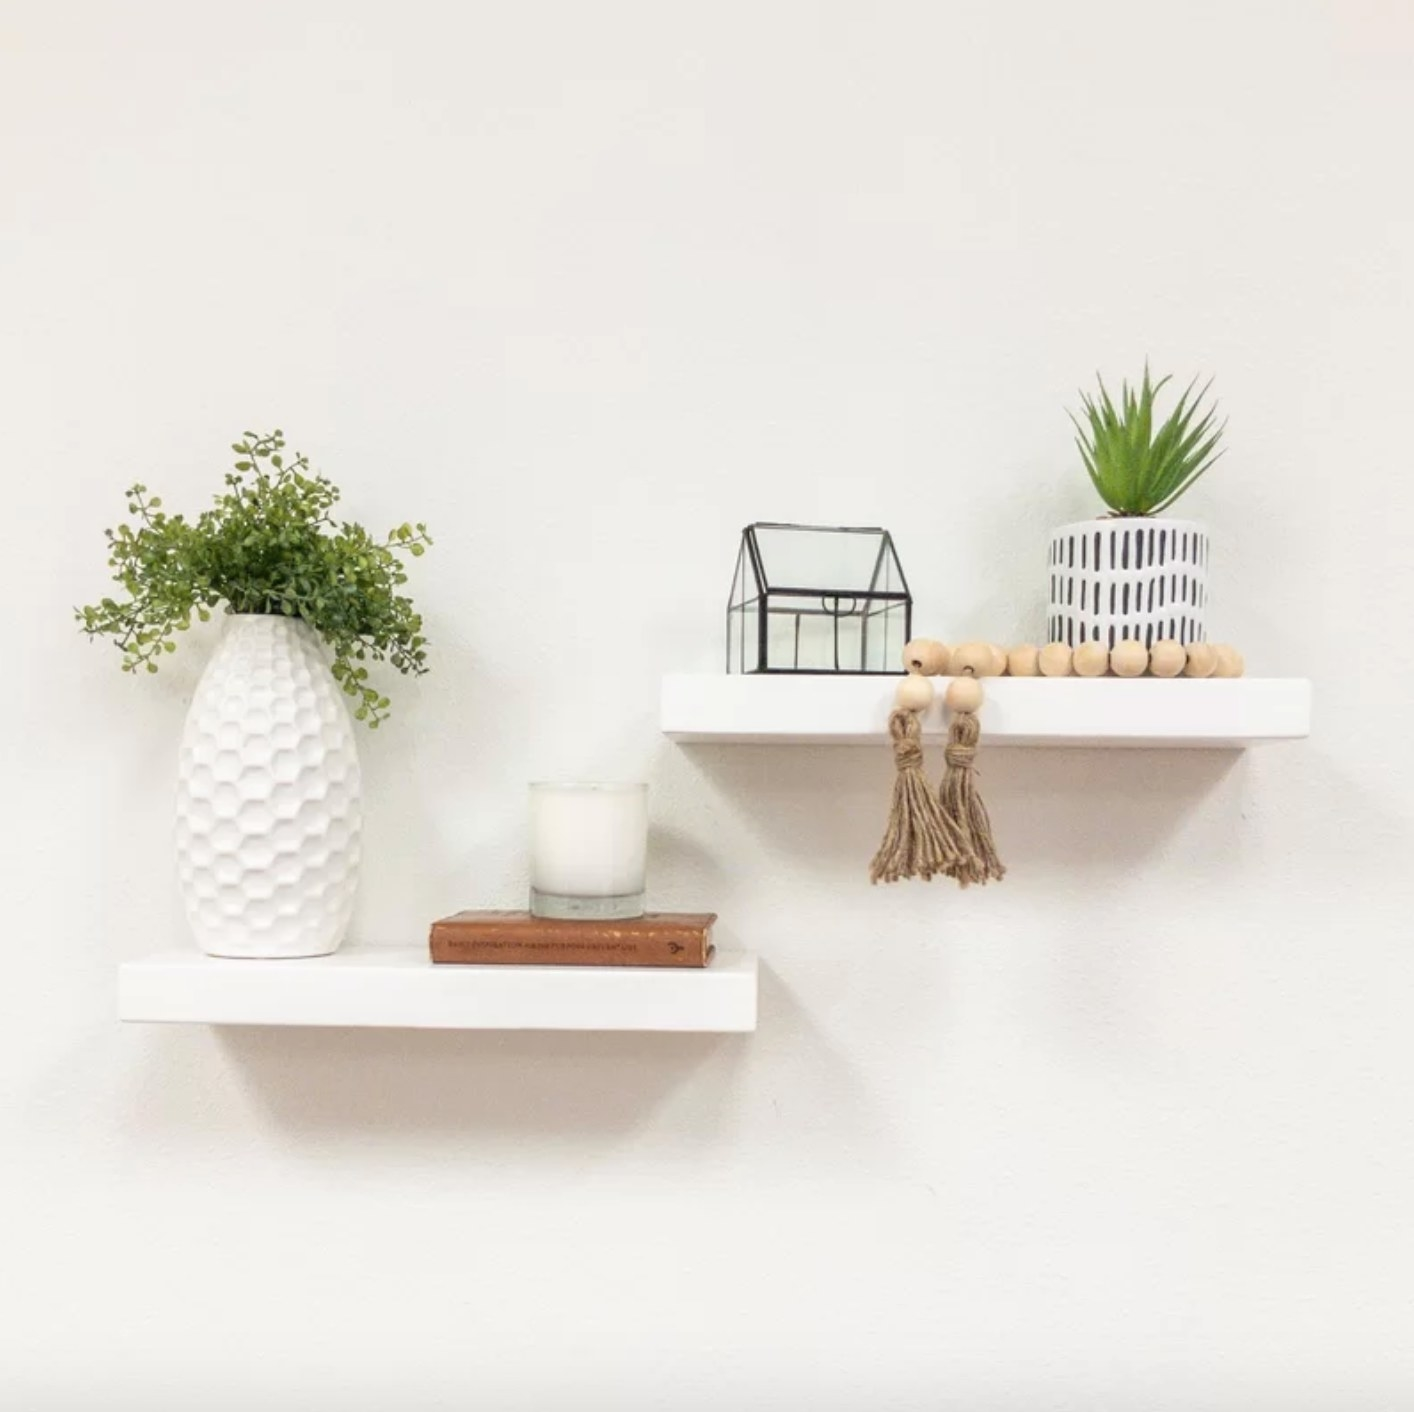 The set of two floating shelves in white